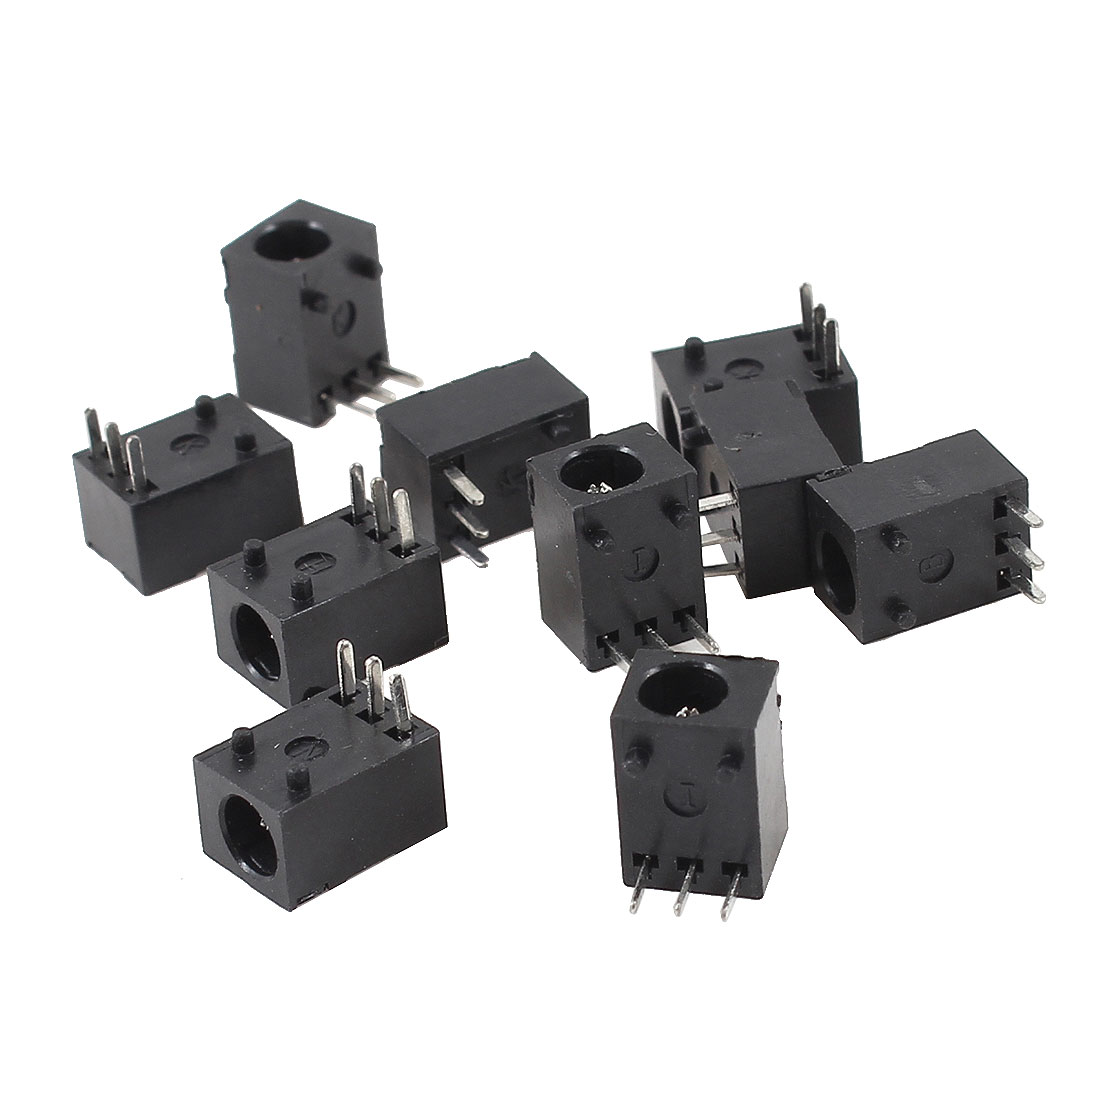 10 Pcs Black 3 Poles 3.5mm x 1.3mm DC Power Jack Socket PCB Mount Connector